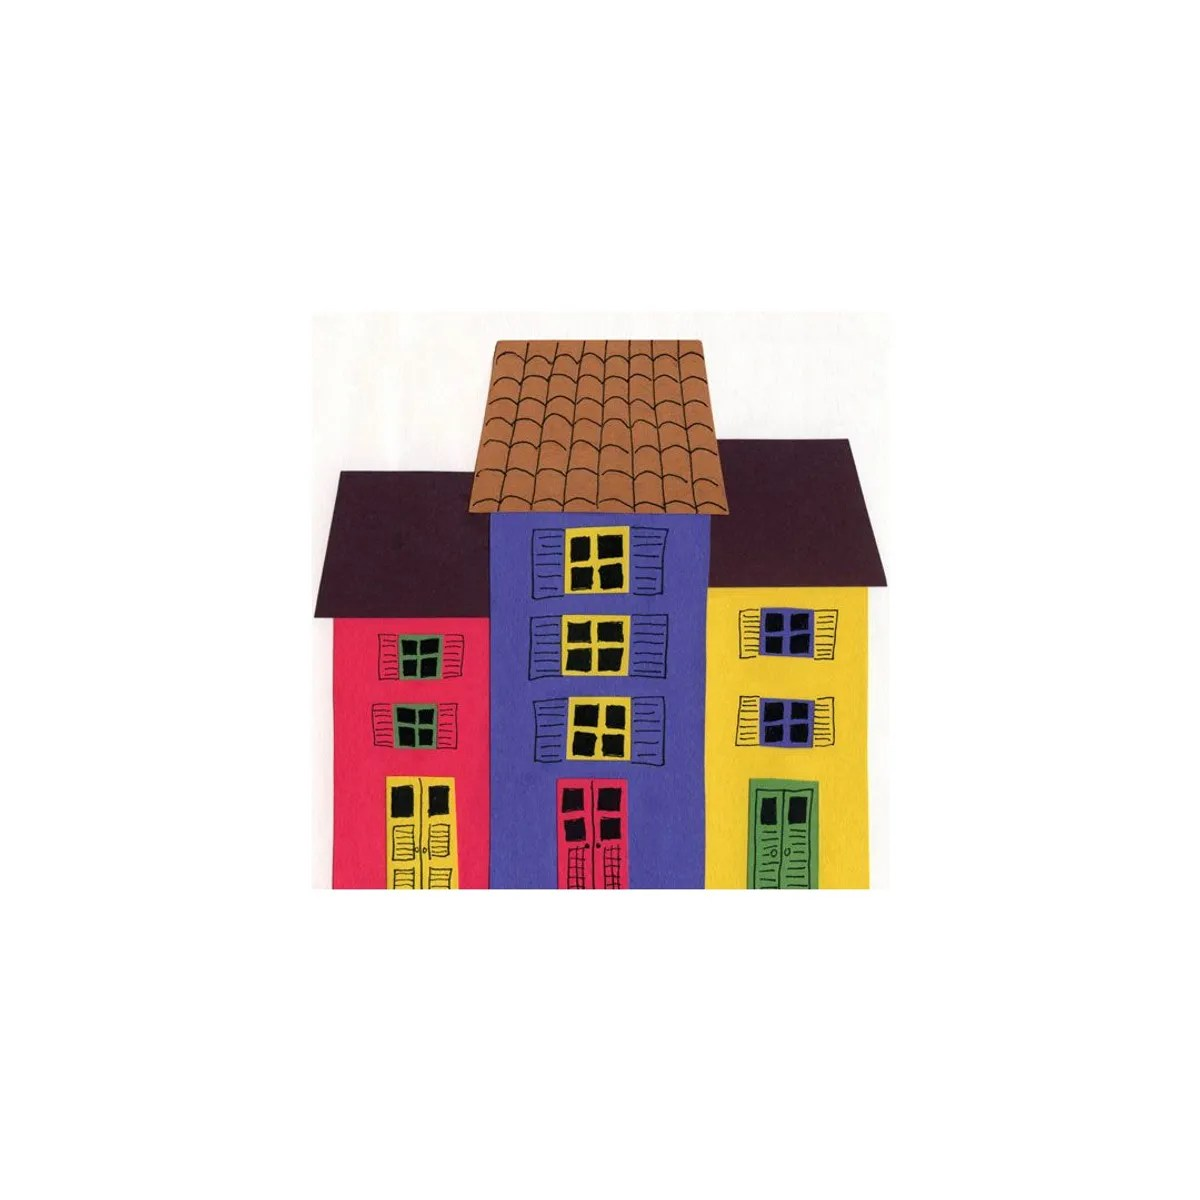 Strathmore 100 Construction 8 Assorted Shades Polypack